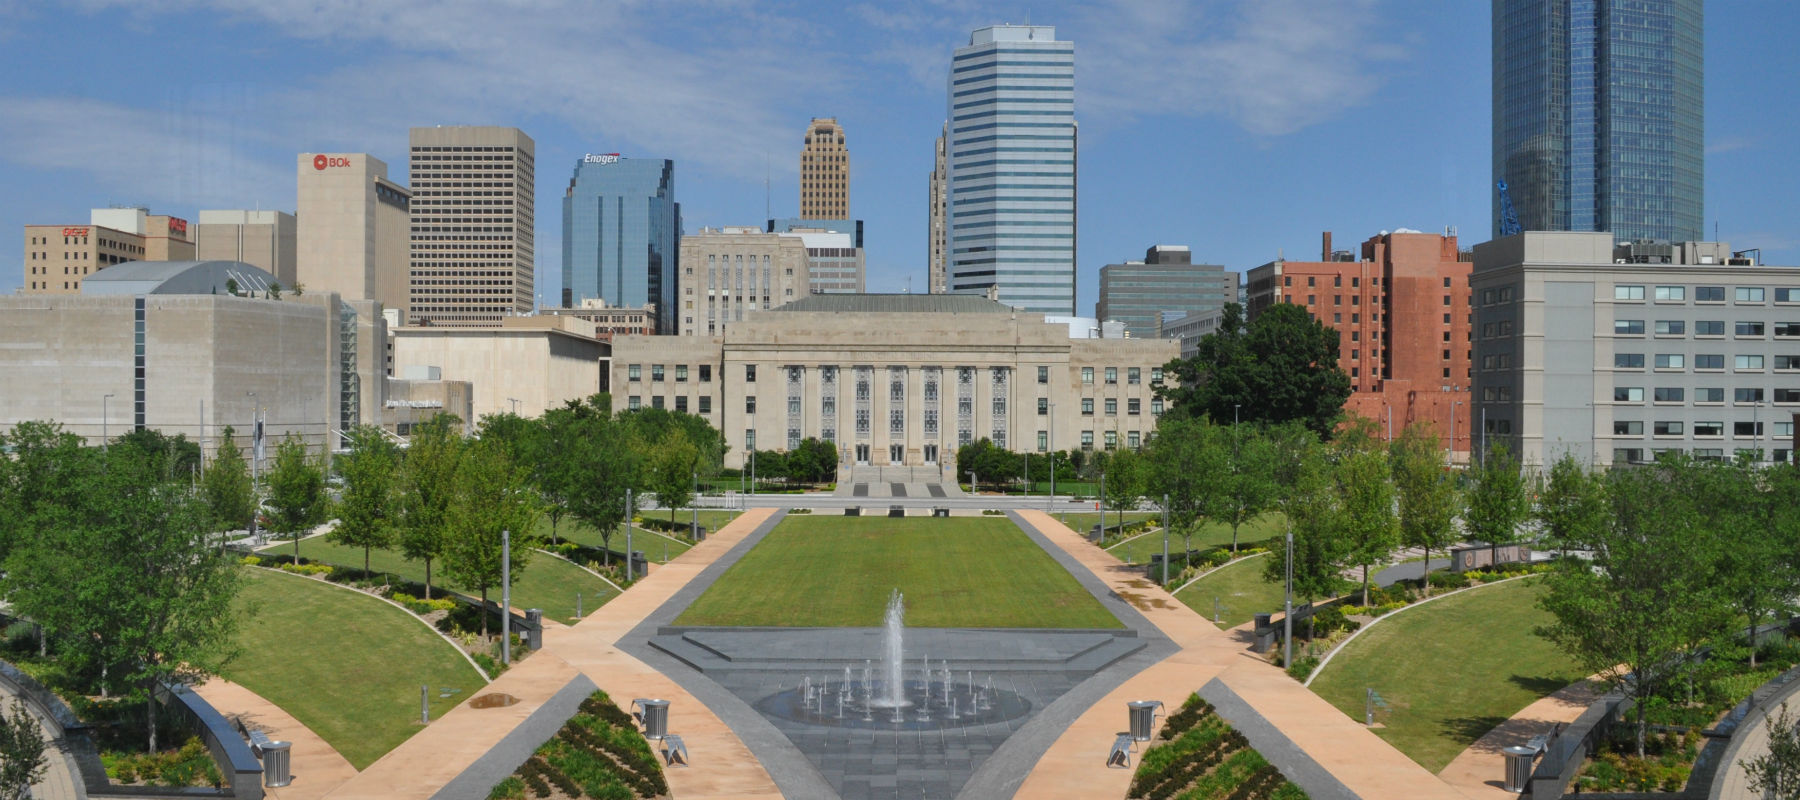 Bicentennial Park and Oklahoma City Hall